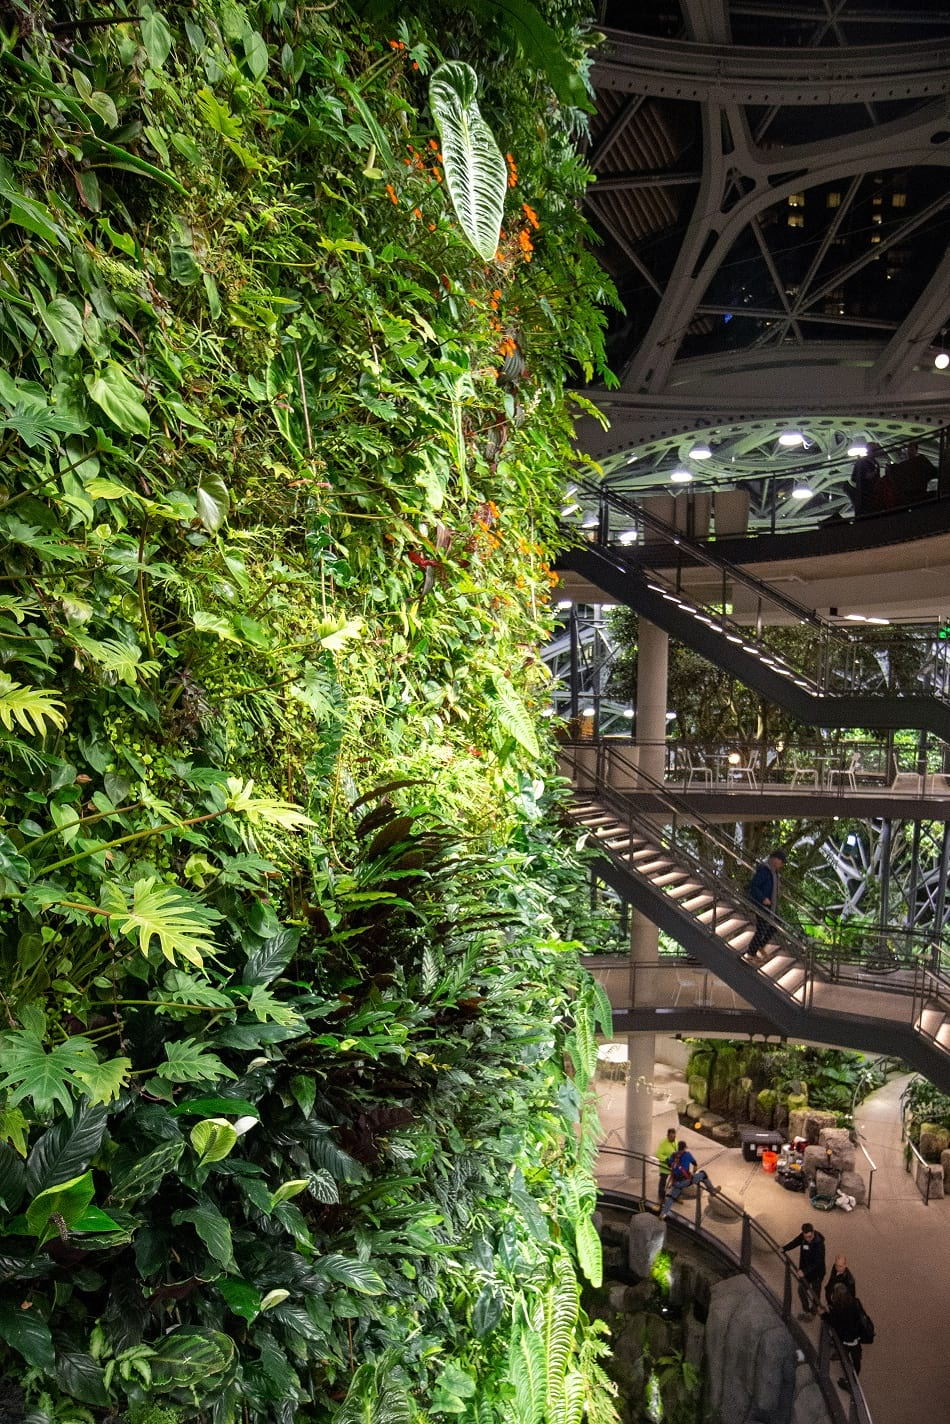 Living wall inside Amazon Spheres.